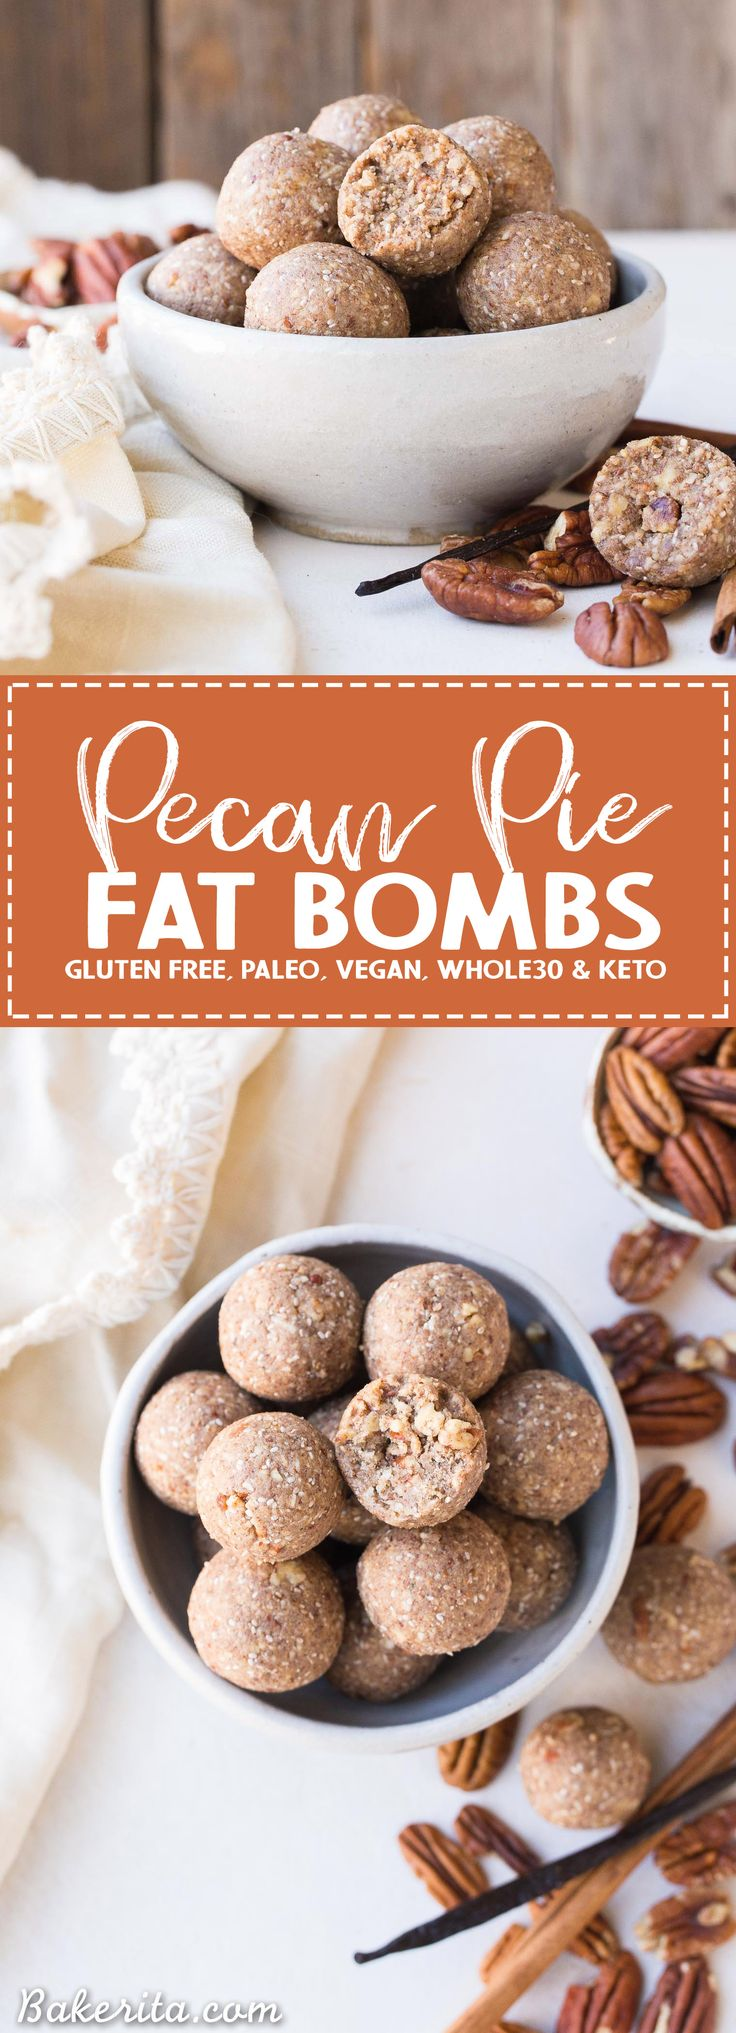 These Pecan Pie Fat Bombs are a super filling nutritional powerhouse, with loads of healthy fats and protein, and no sugar needed! These fat bombs full of vanilla bean and buttery pecans, and they're gluten-free, paleo, vegan, keto, and Whole30-approved.